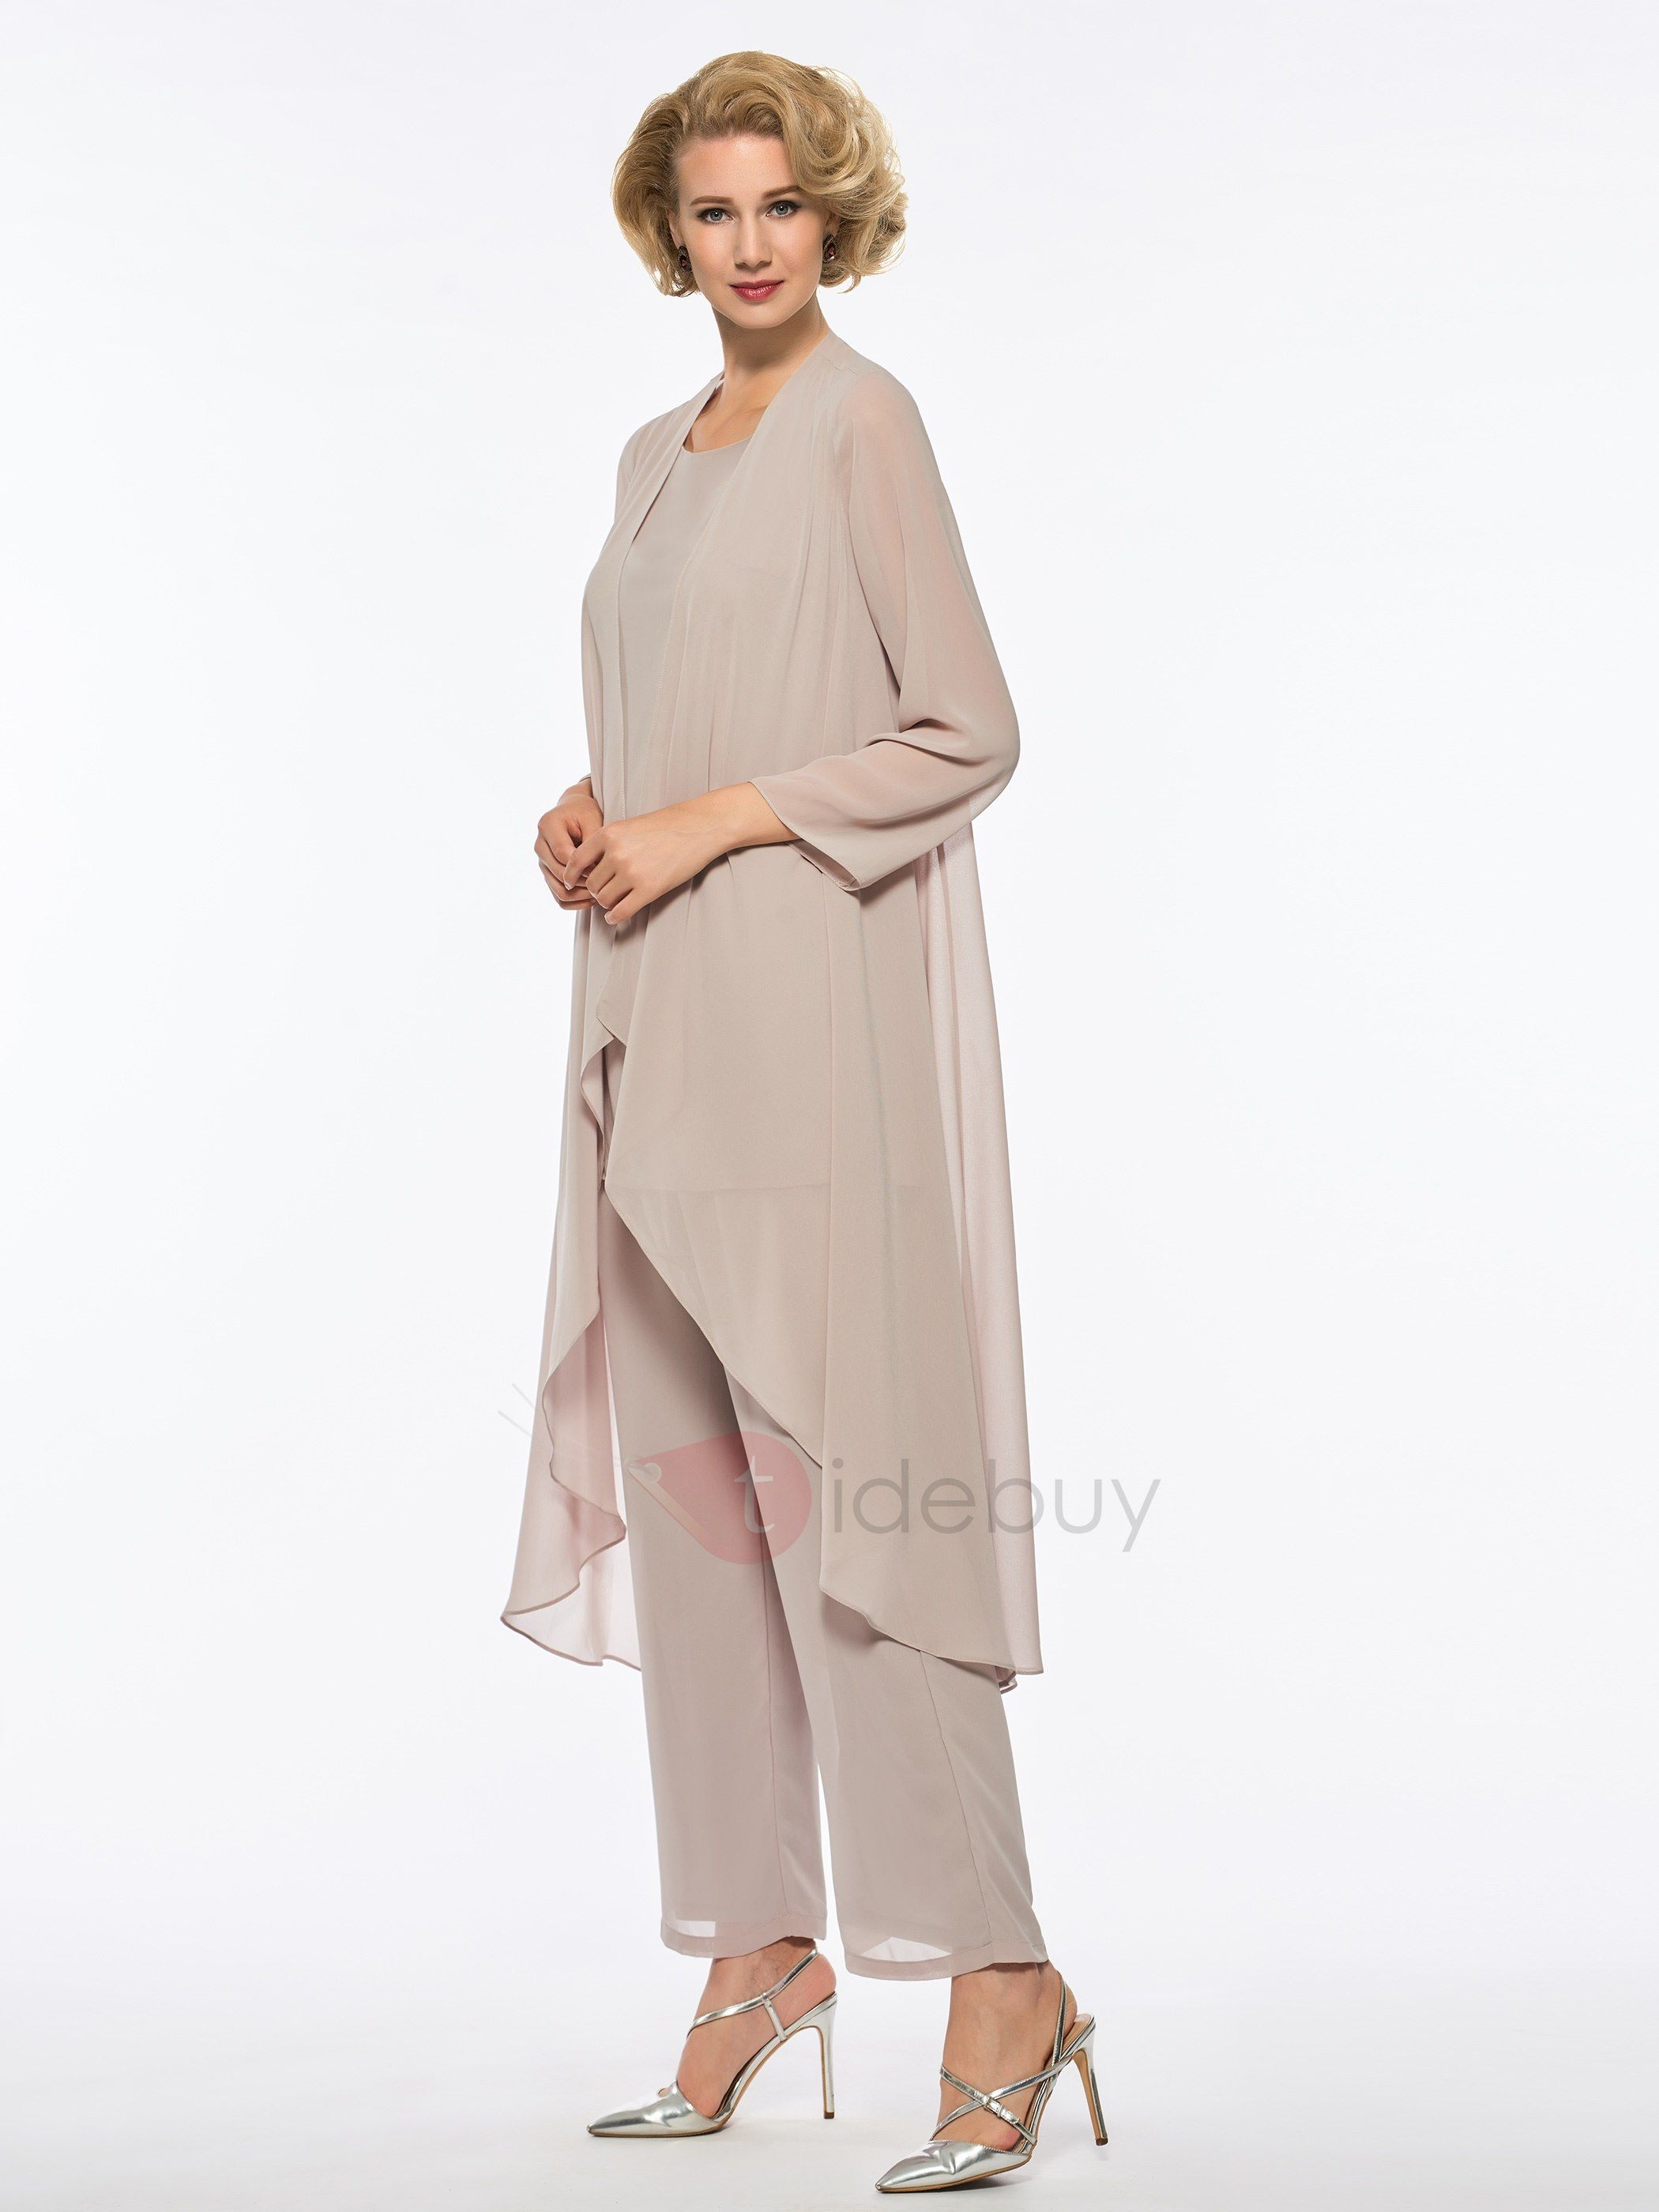 efcc4900668 Tidebuy.com Offers High Quality Pure Mother of the Bride Jumpsuit with Long  Sleeve Jacket